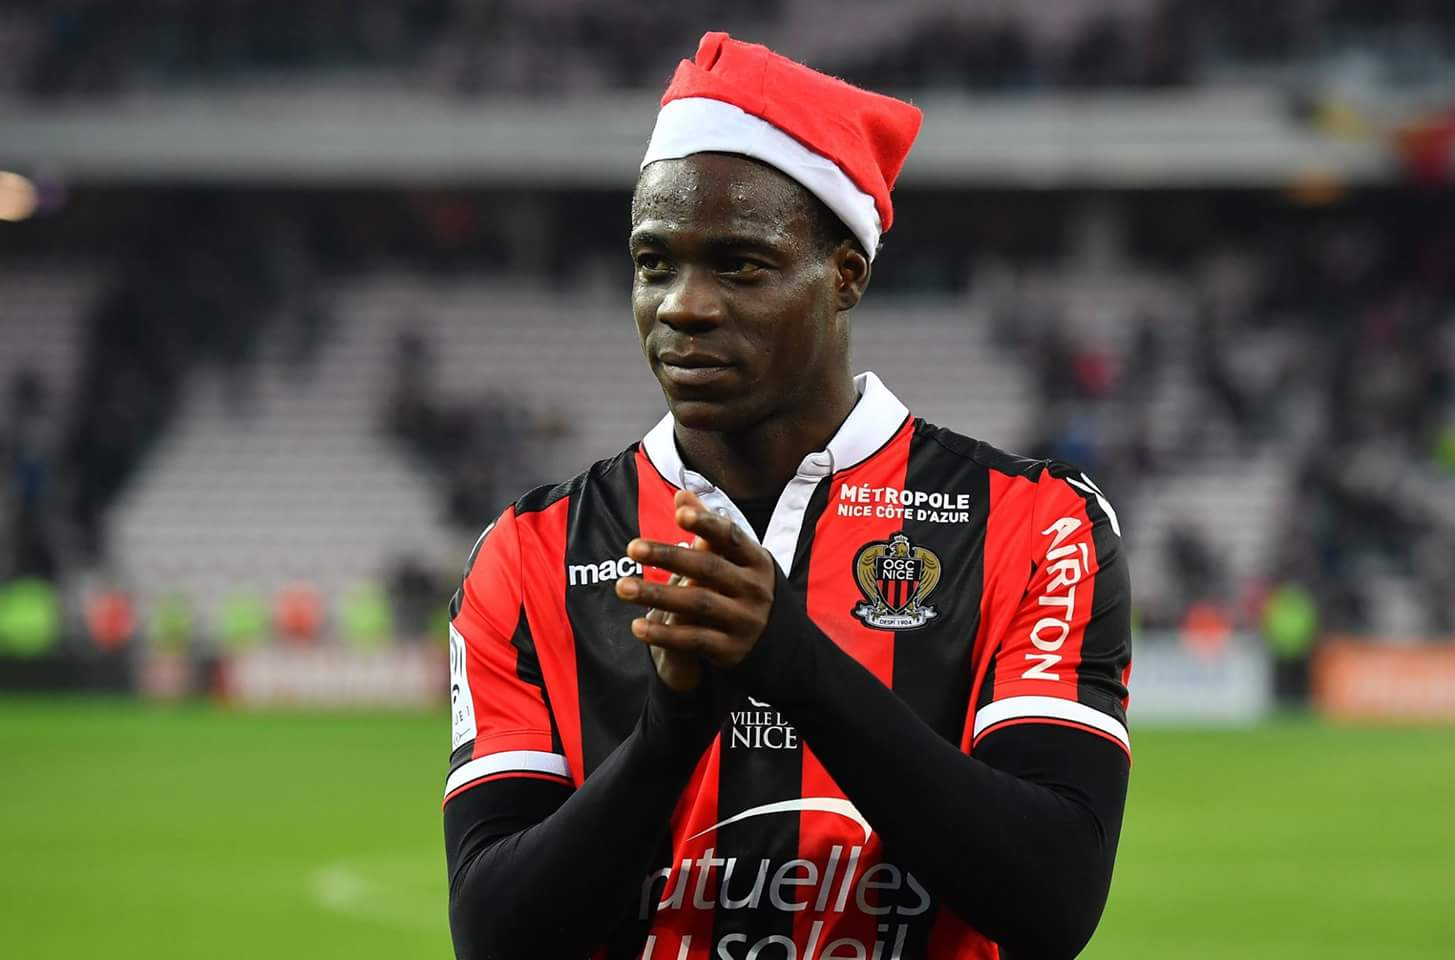 UCL: Money allows you to buy great players but not a team, Balotelli trolls PSG